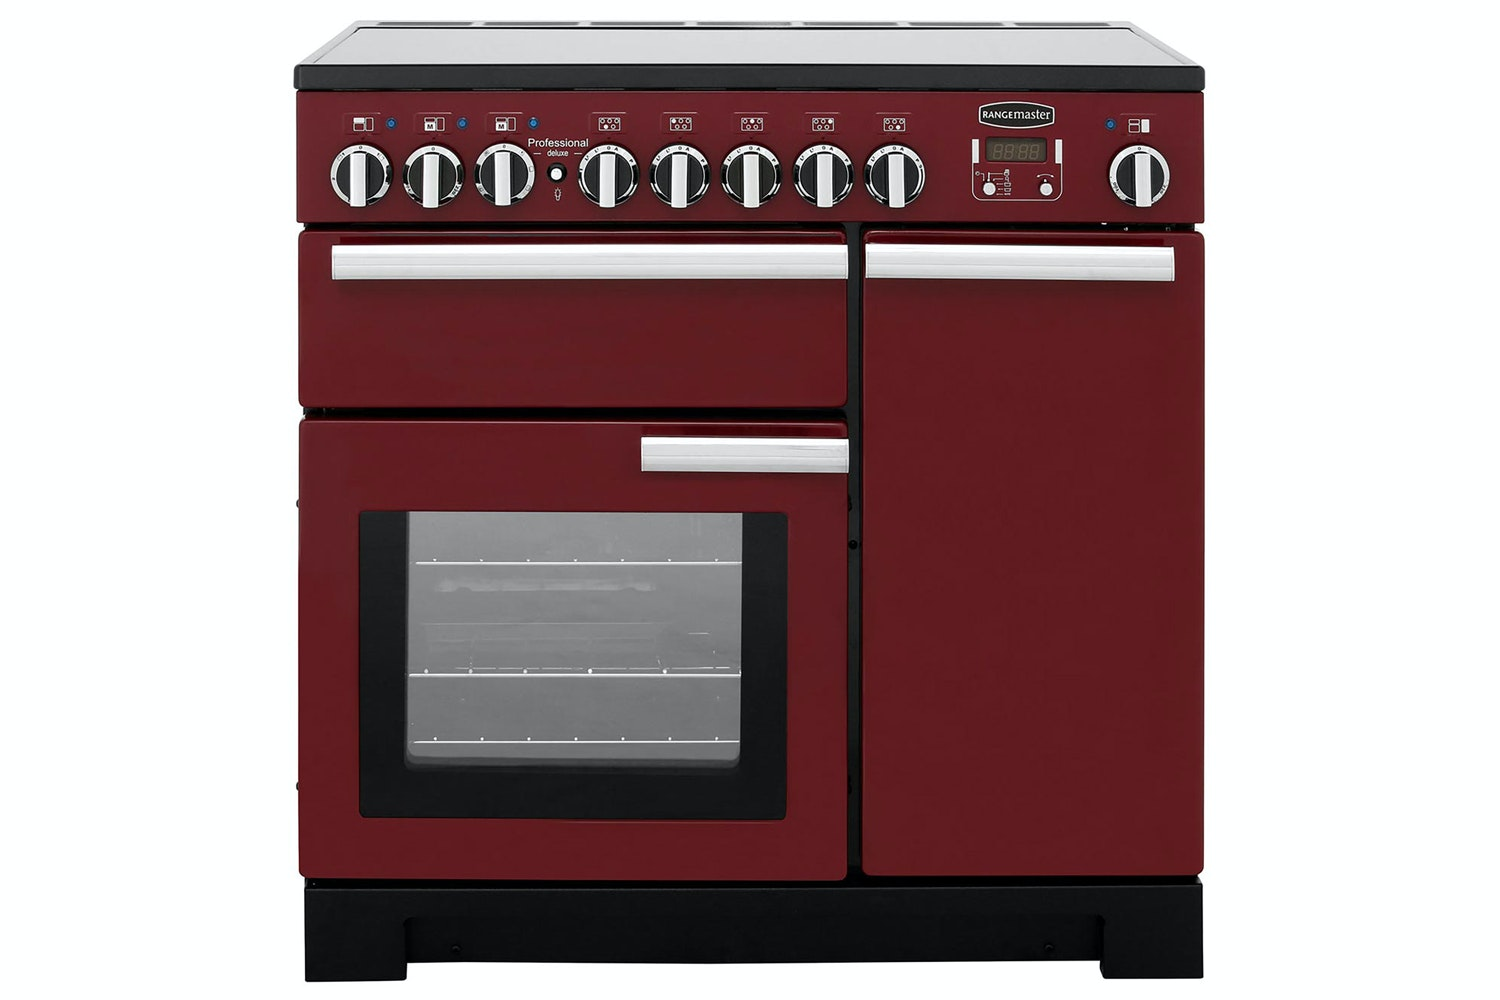 Rangemaster Professional Deluxe 90cm Electric Range Cooker | PDL90EICY/C | Cranberry